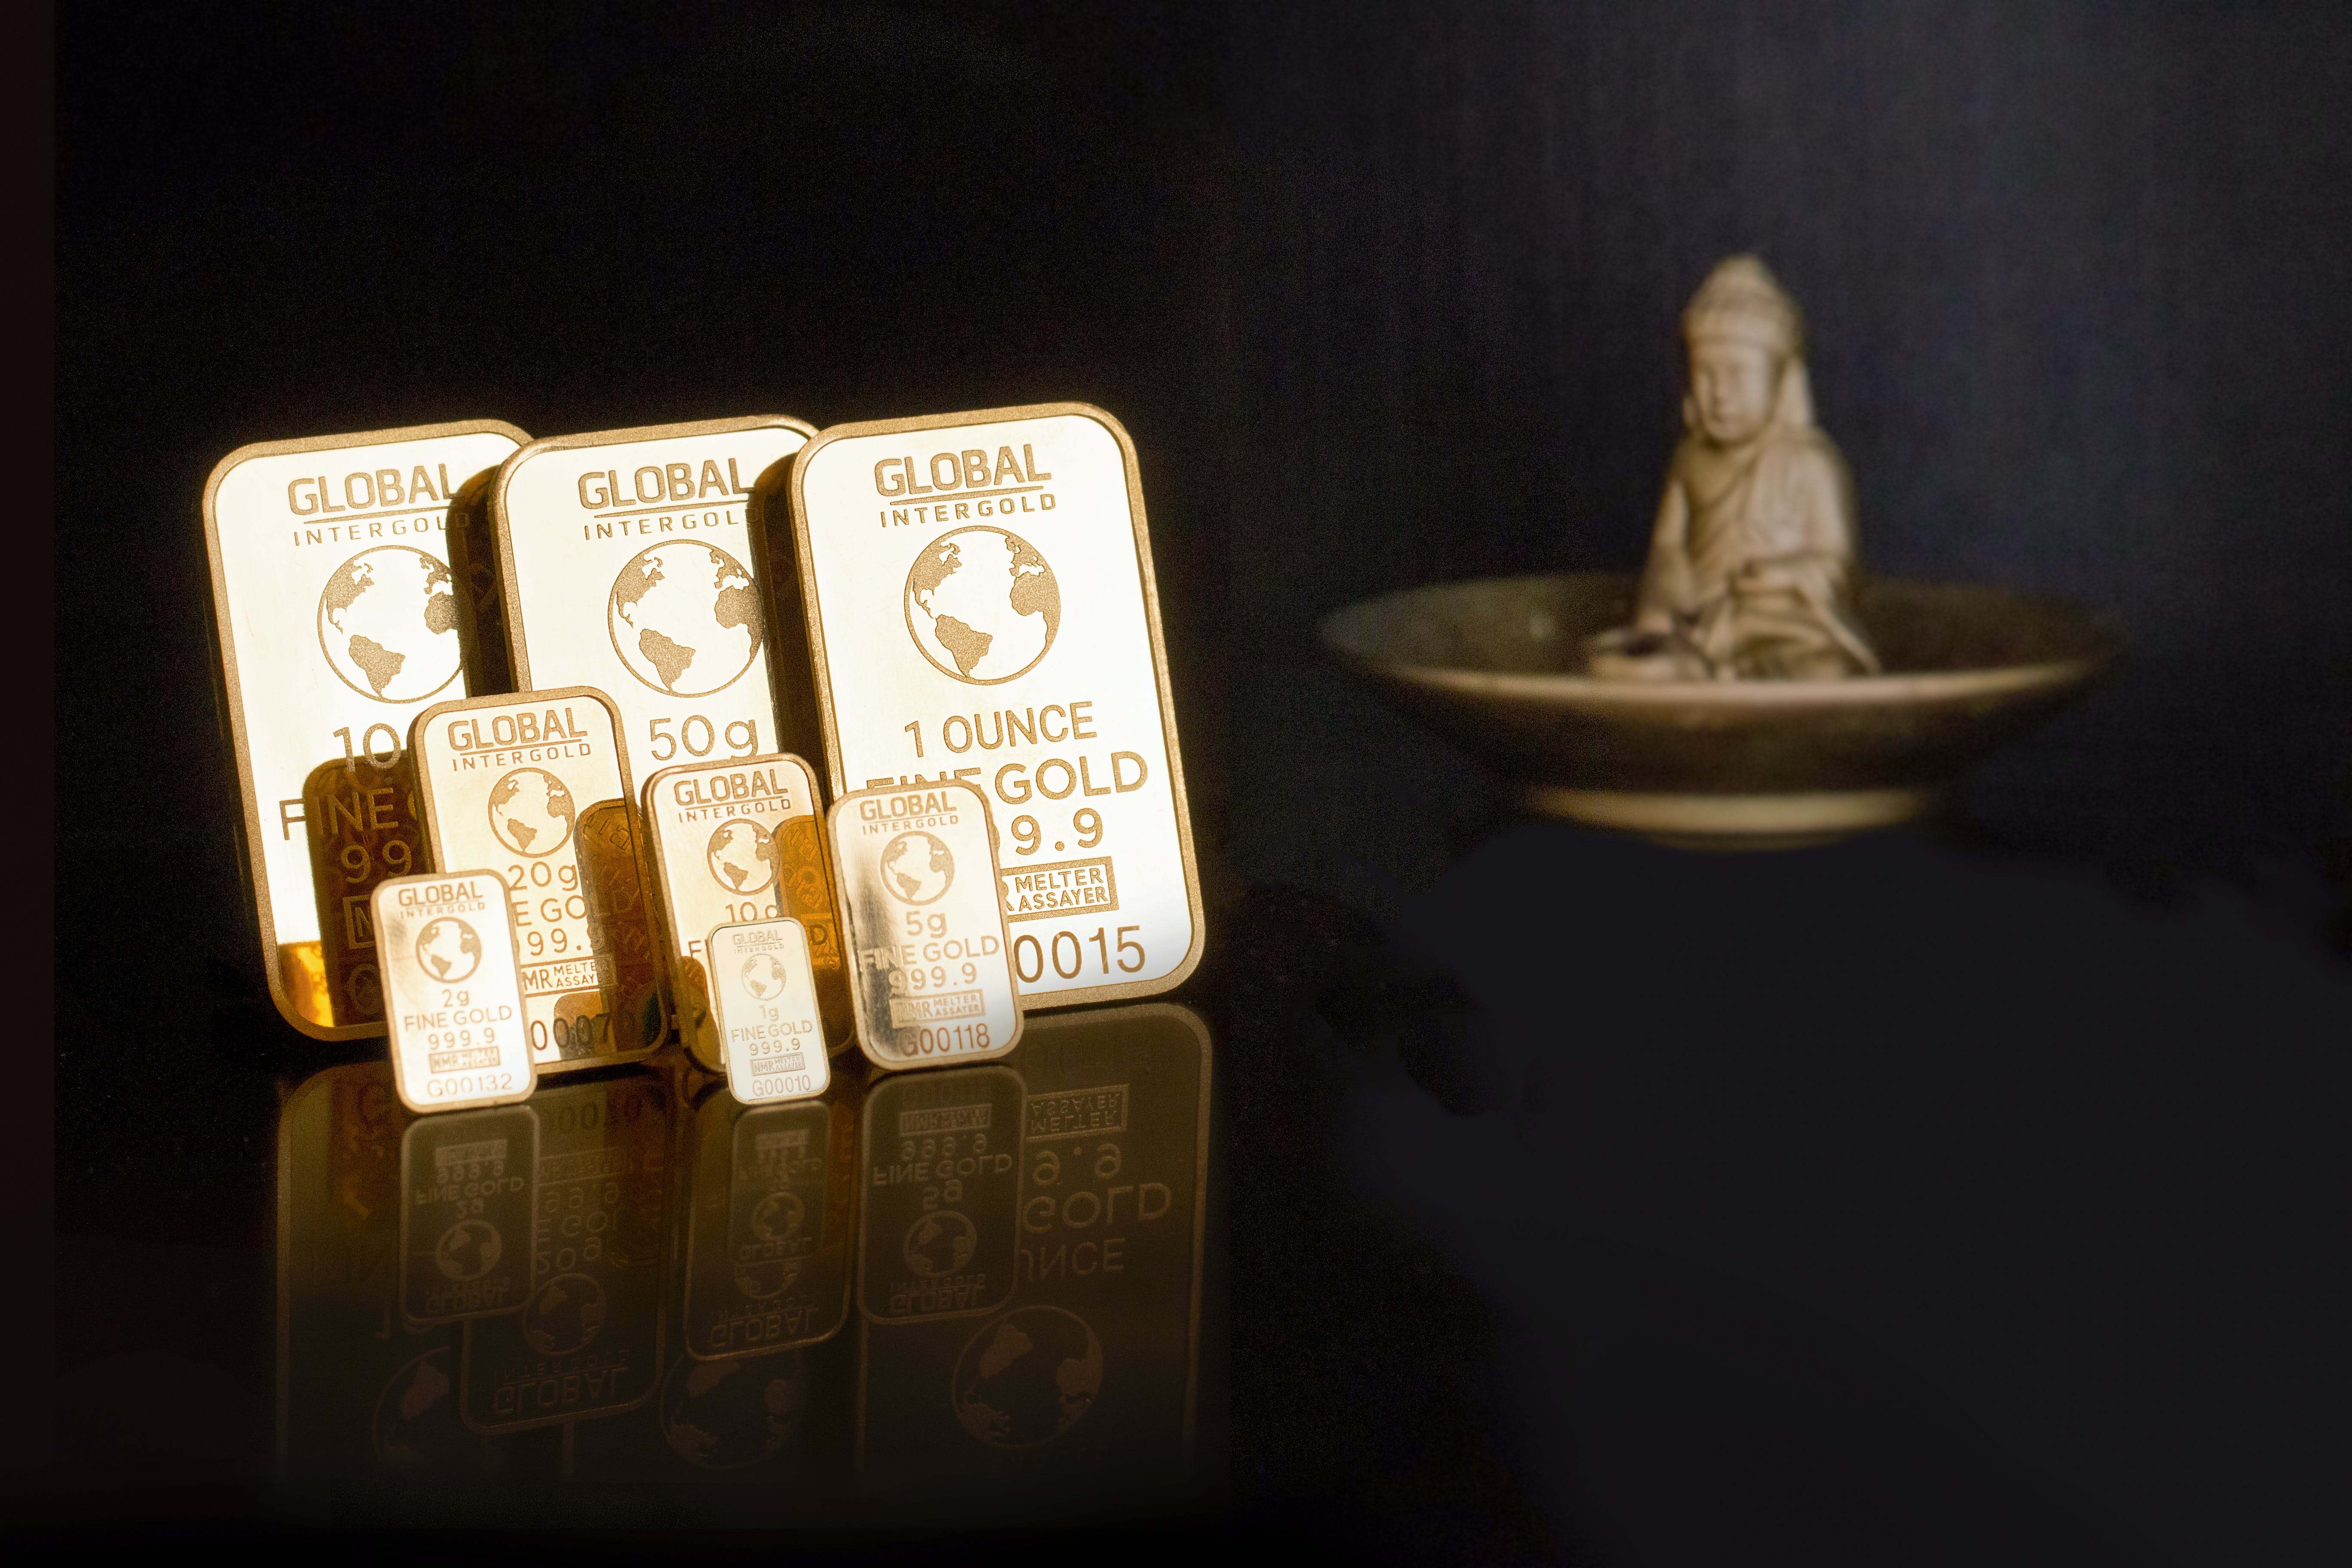 Free stock photo of global intergold, gold bars, gold is money, gold shop